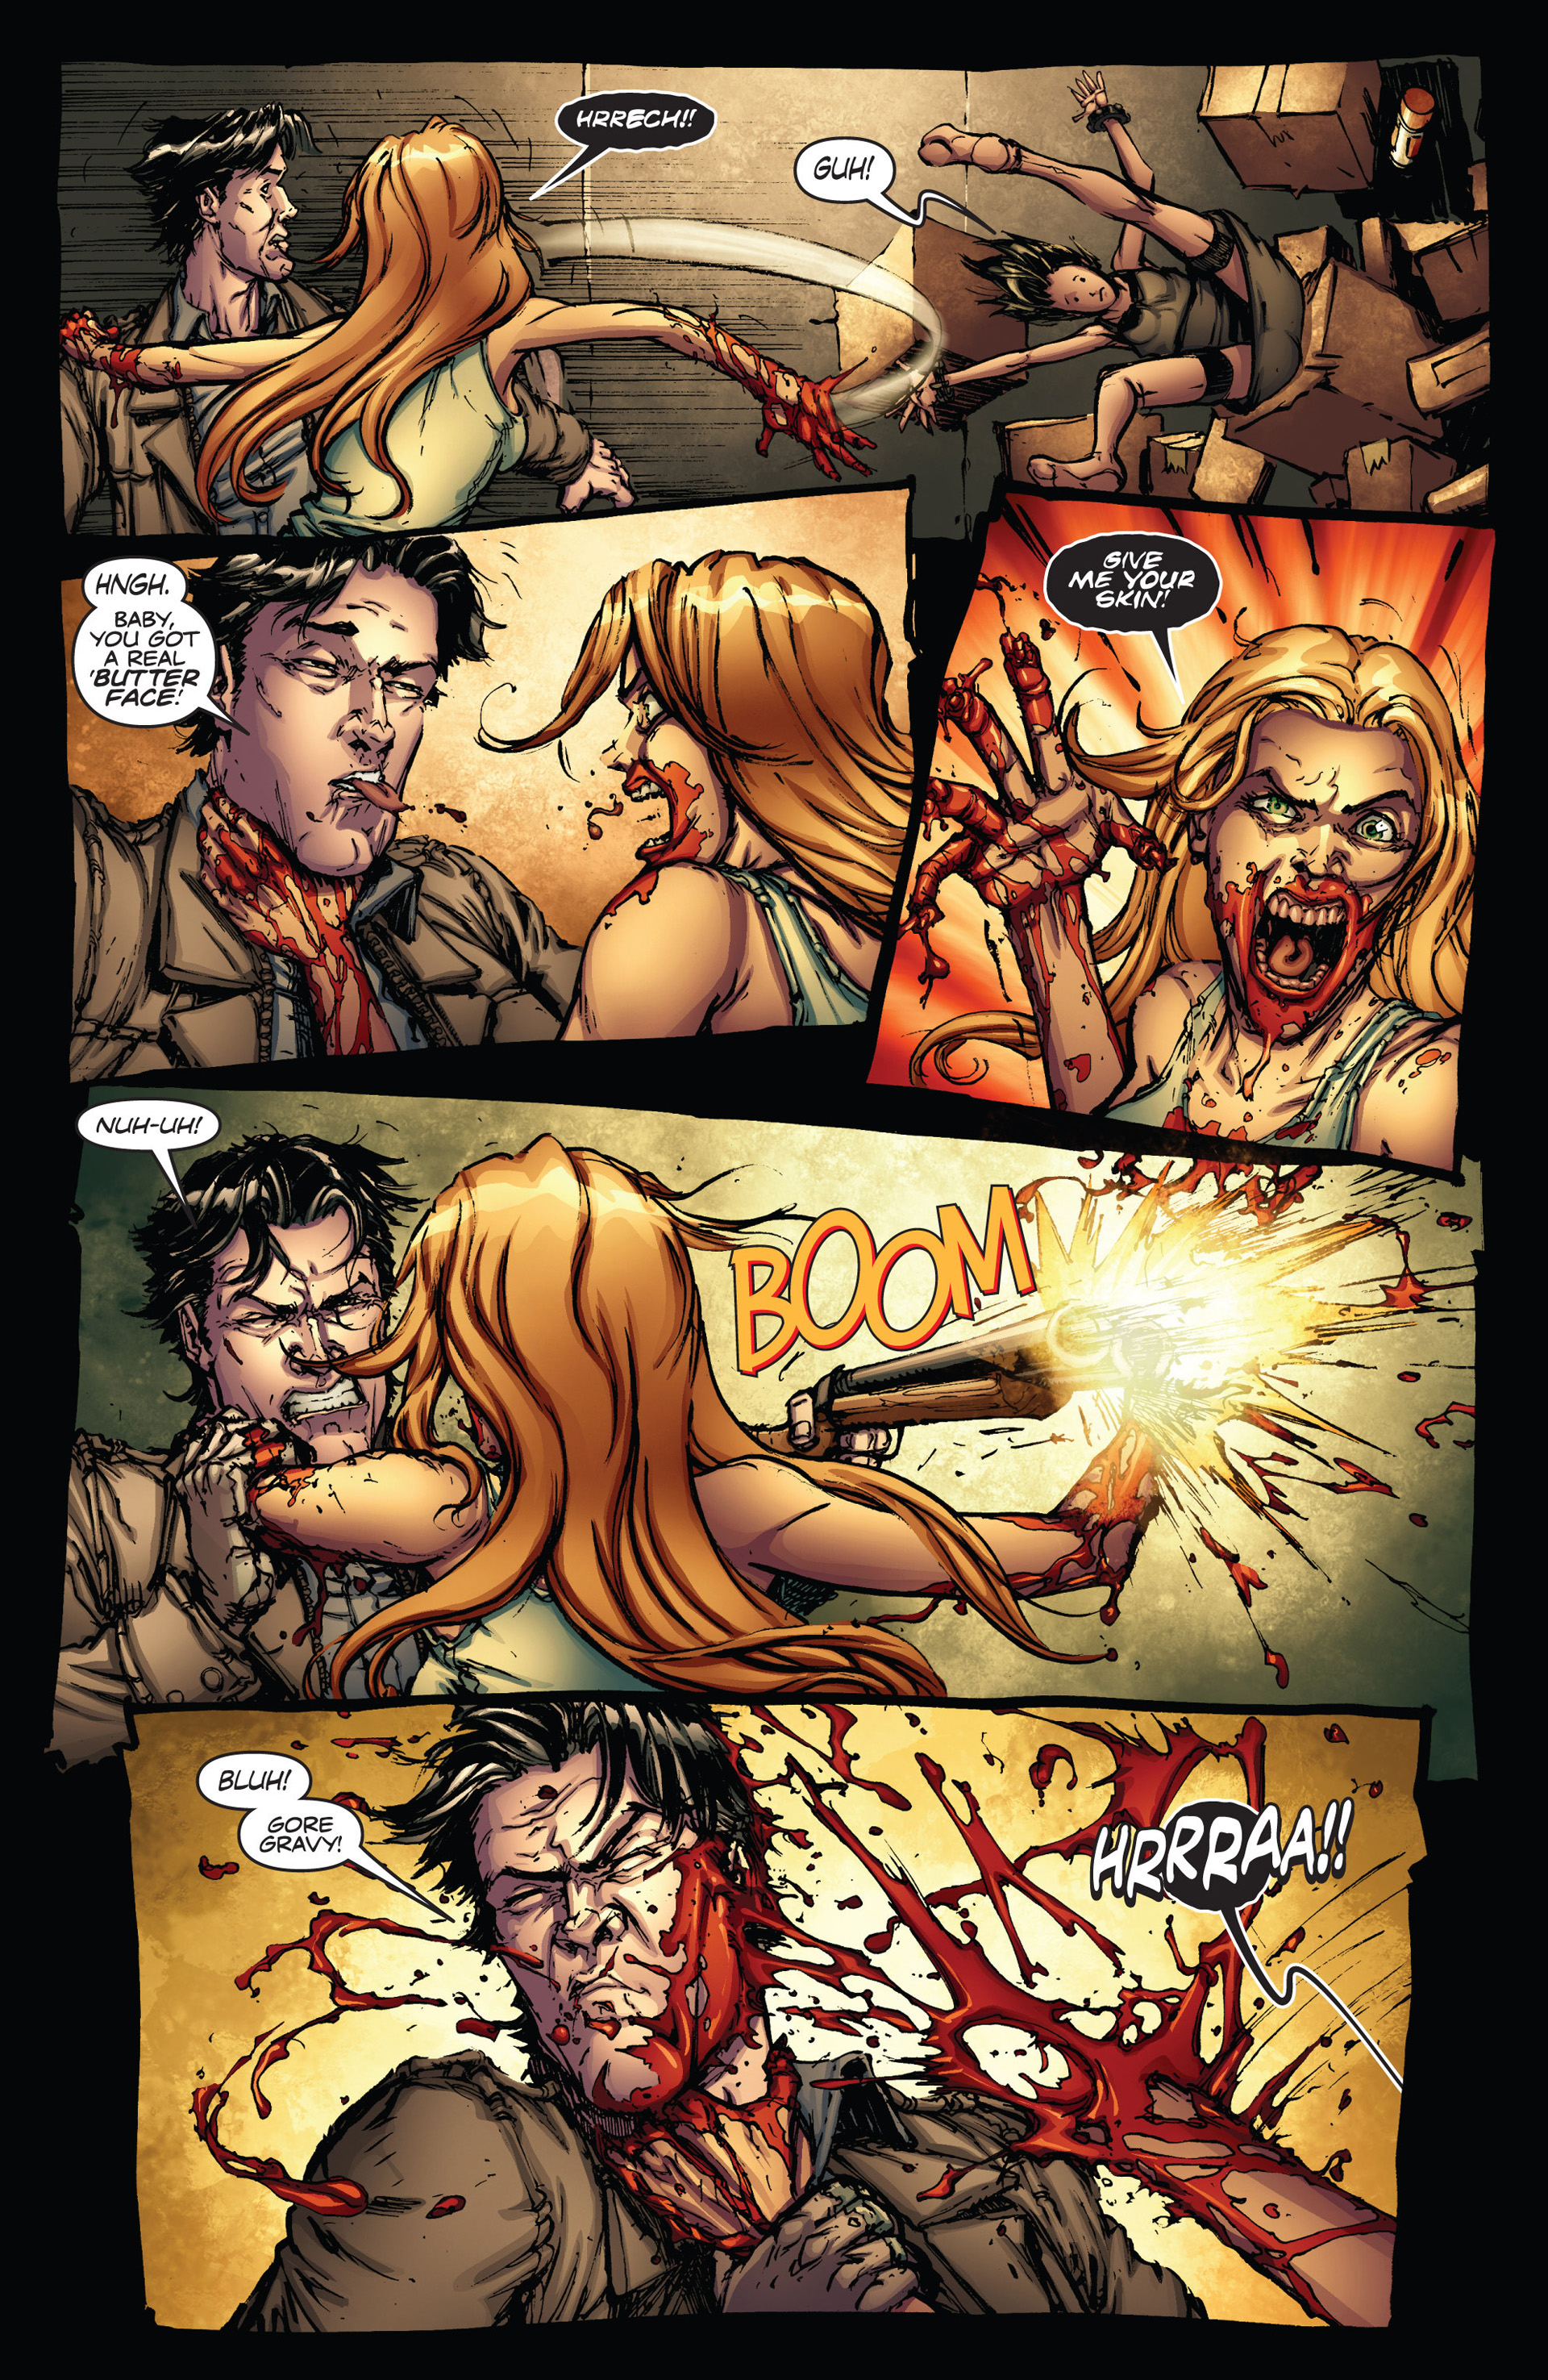 Read online Army of Darkness vs. Hack/Slash comic -  Issue #1 - 21